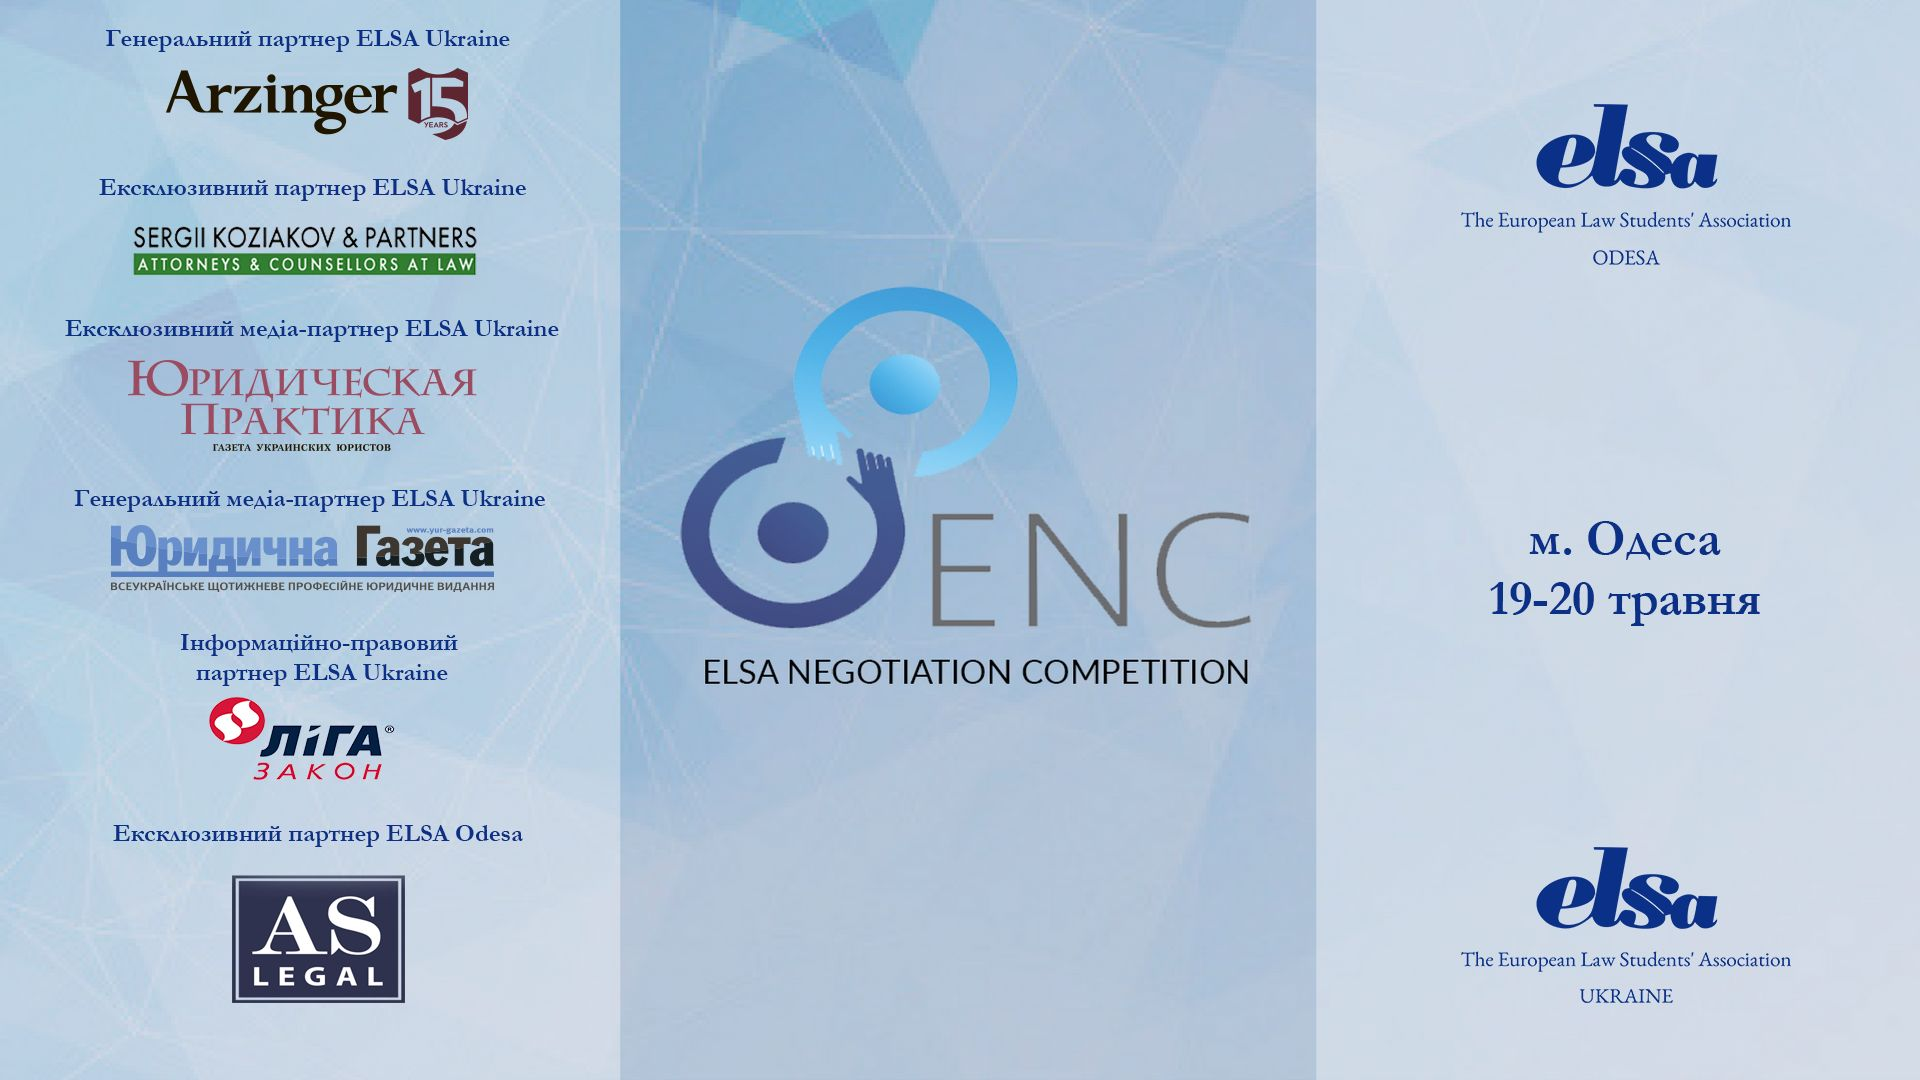 ELSA Negotiation Competition